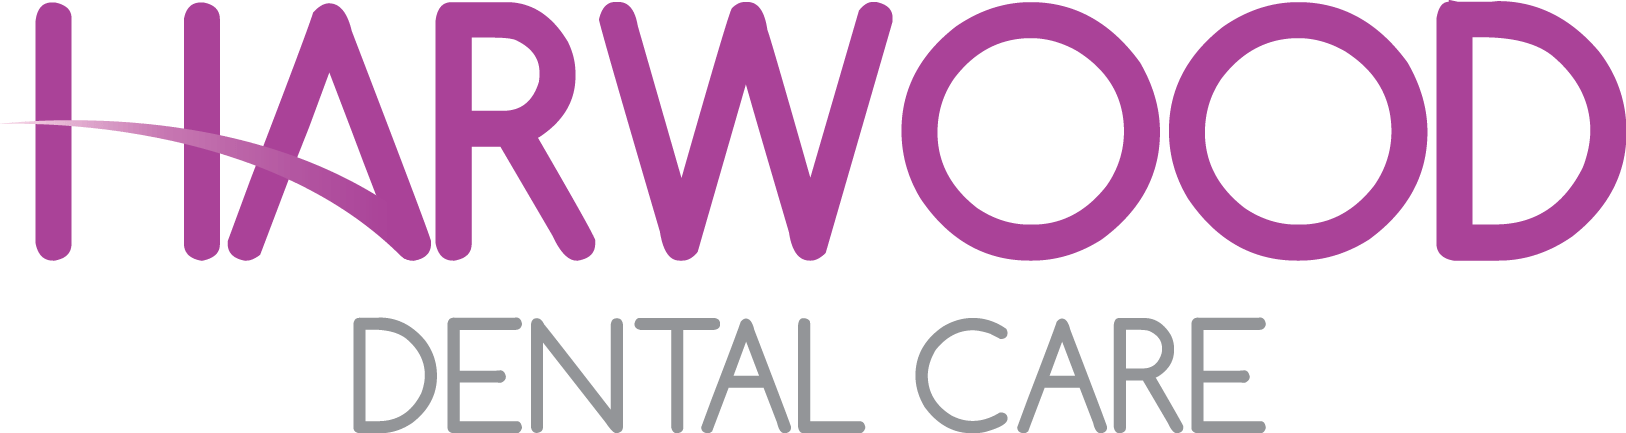 Harwood Dental Care Bolton